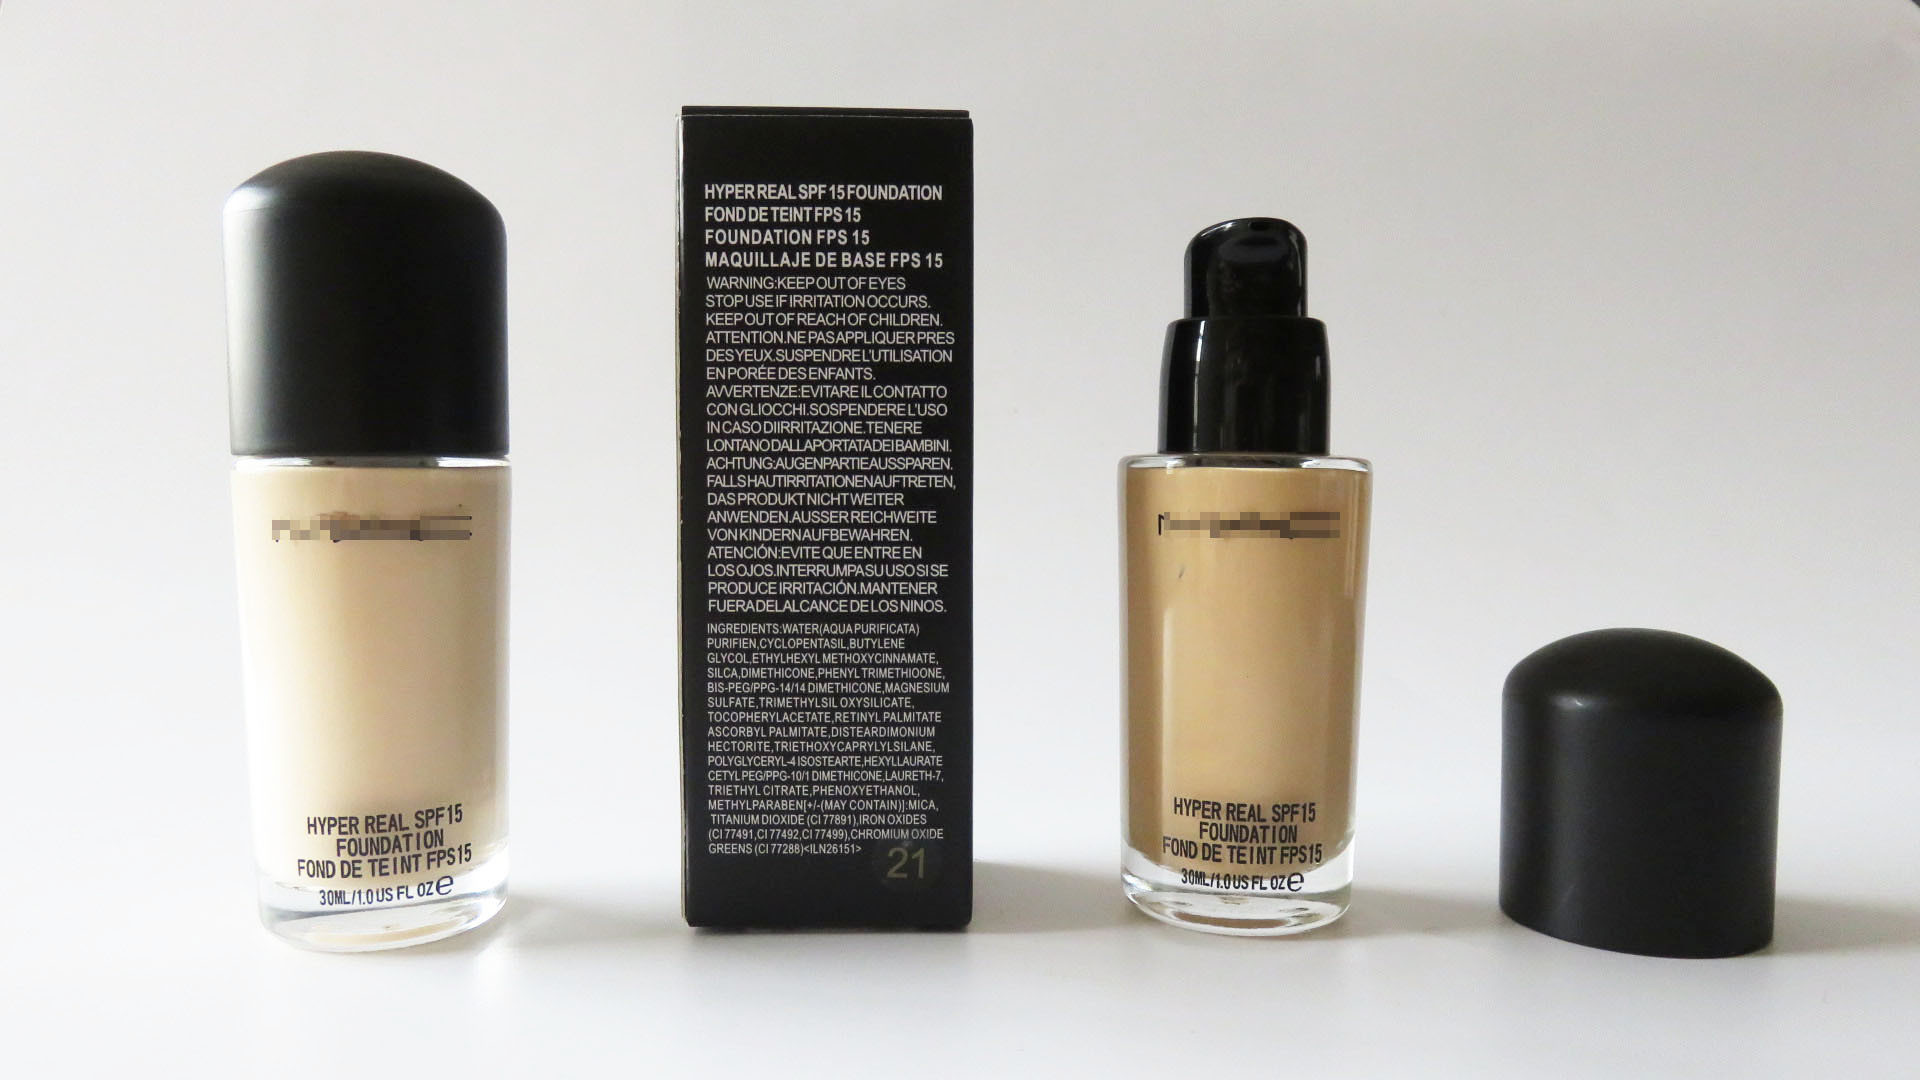 Washami High Quality Cosmetic Distributor Wanted Foundation and Face Powder Makeup Wholesale